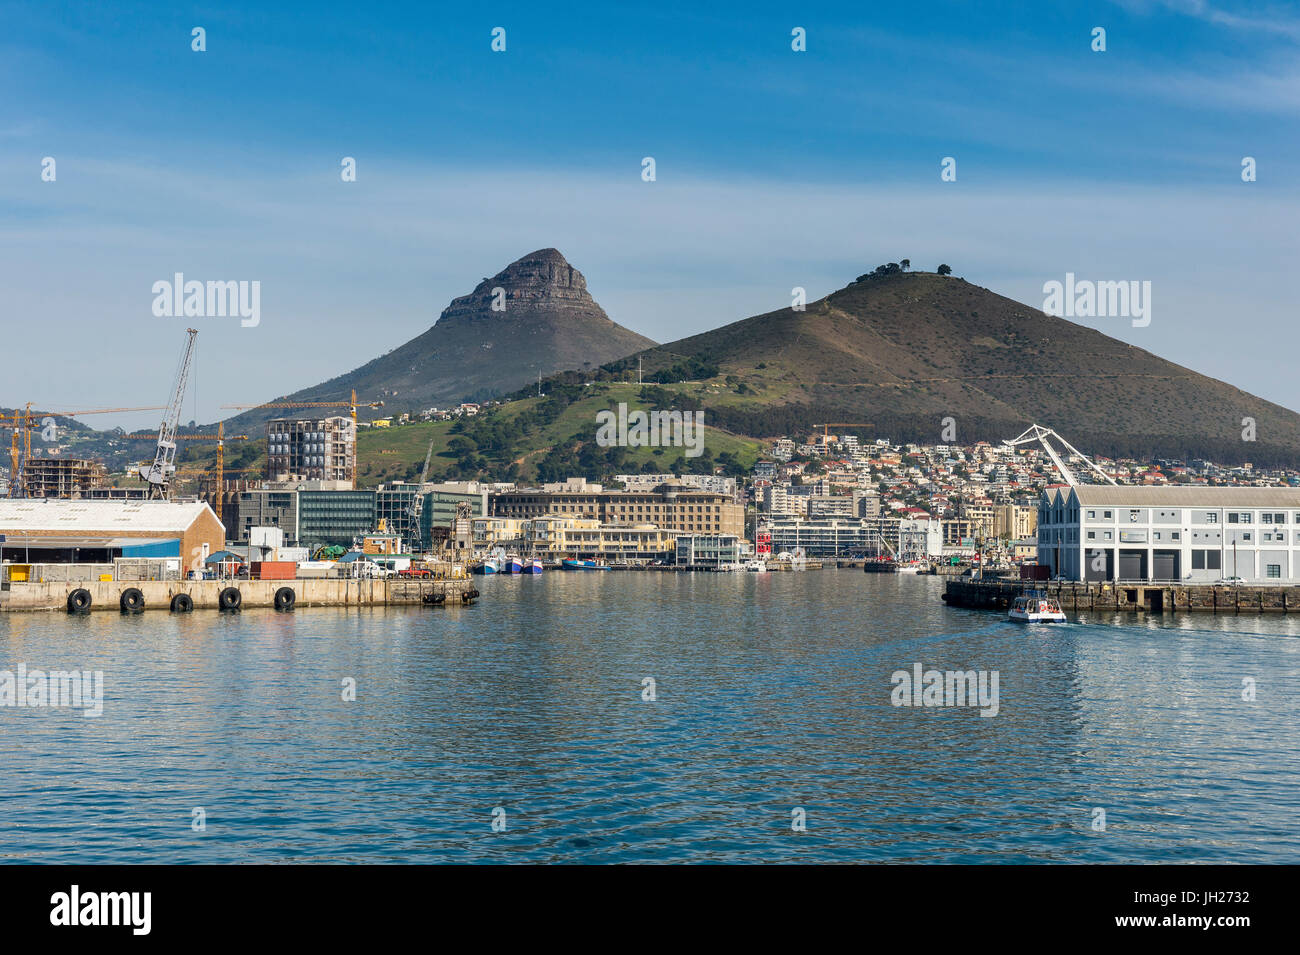 Skyline of Cape Town with Lions Head in the background, Cape Town, South Africa, Africa - Stock Image